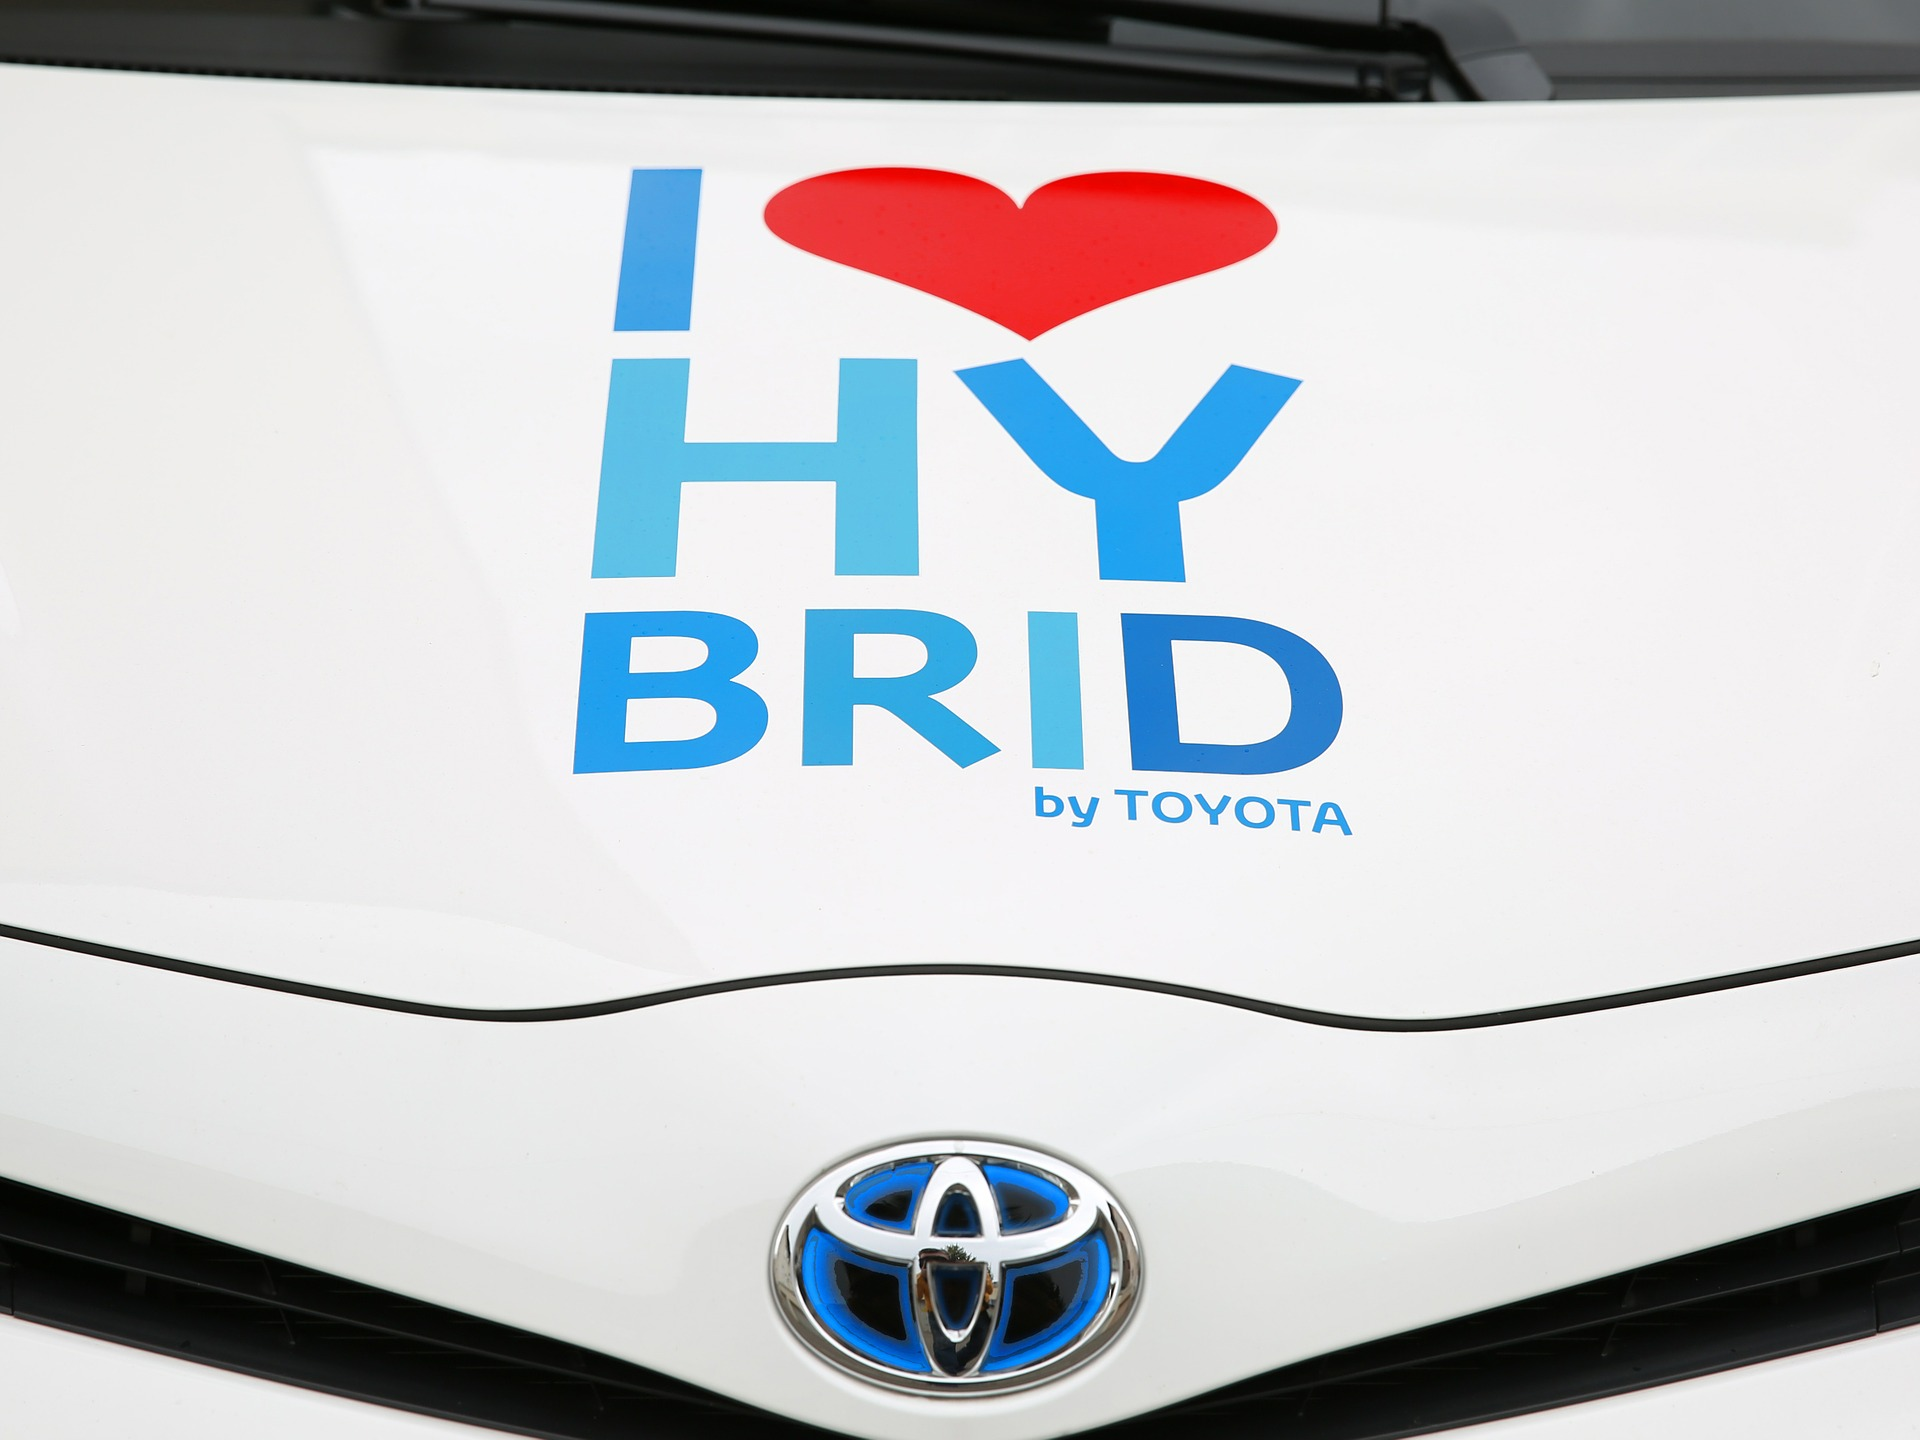 New Hybrid And Electric Cars Made Up 10% Of Sales In November